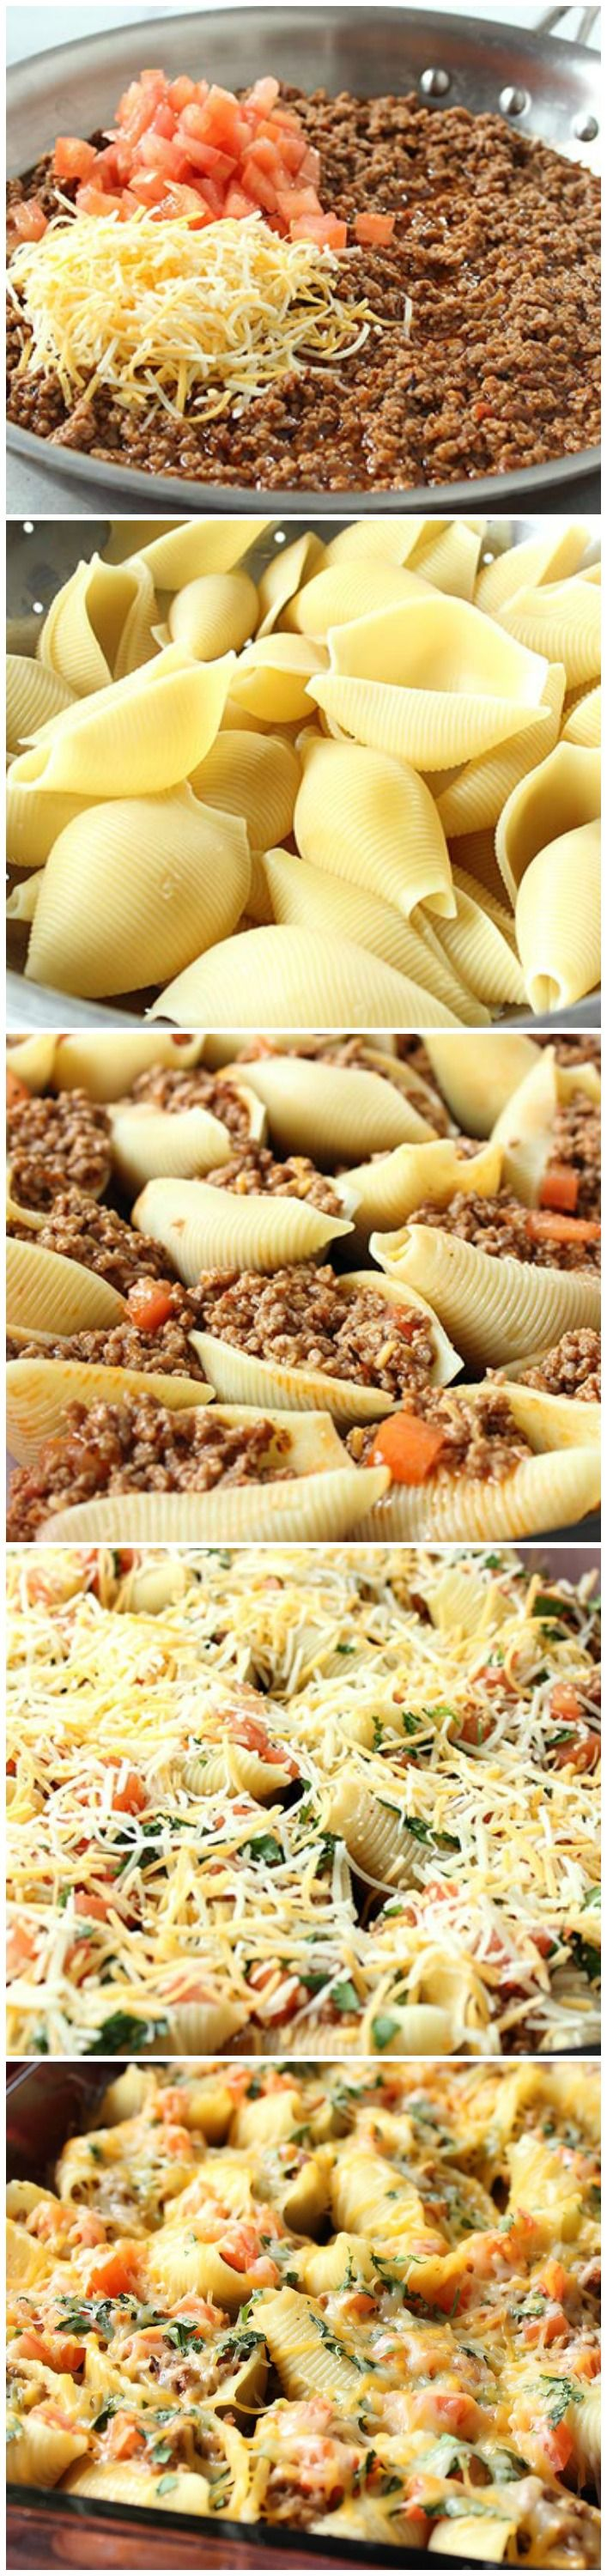 Taco Stuffed Pasta Shells (Original recipe was missing, so I put alternative…